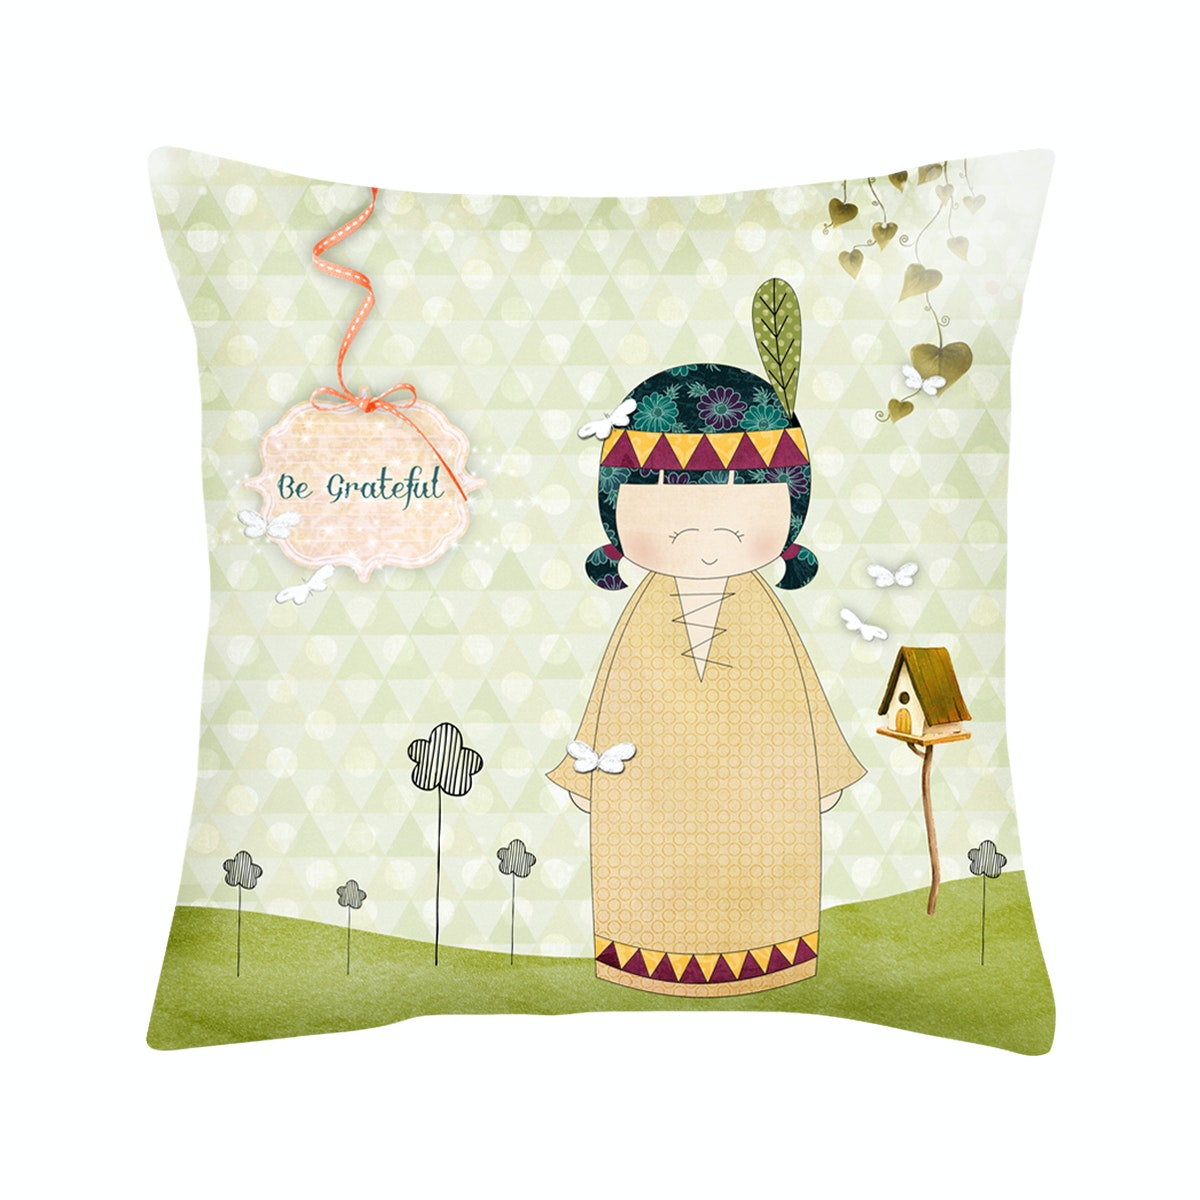 Rumah Odelle Be Grateful Cushion Cover 40cmx40cm (Cover)